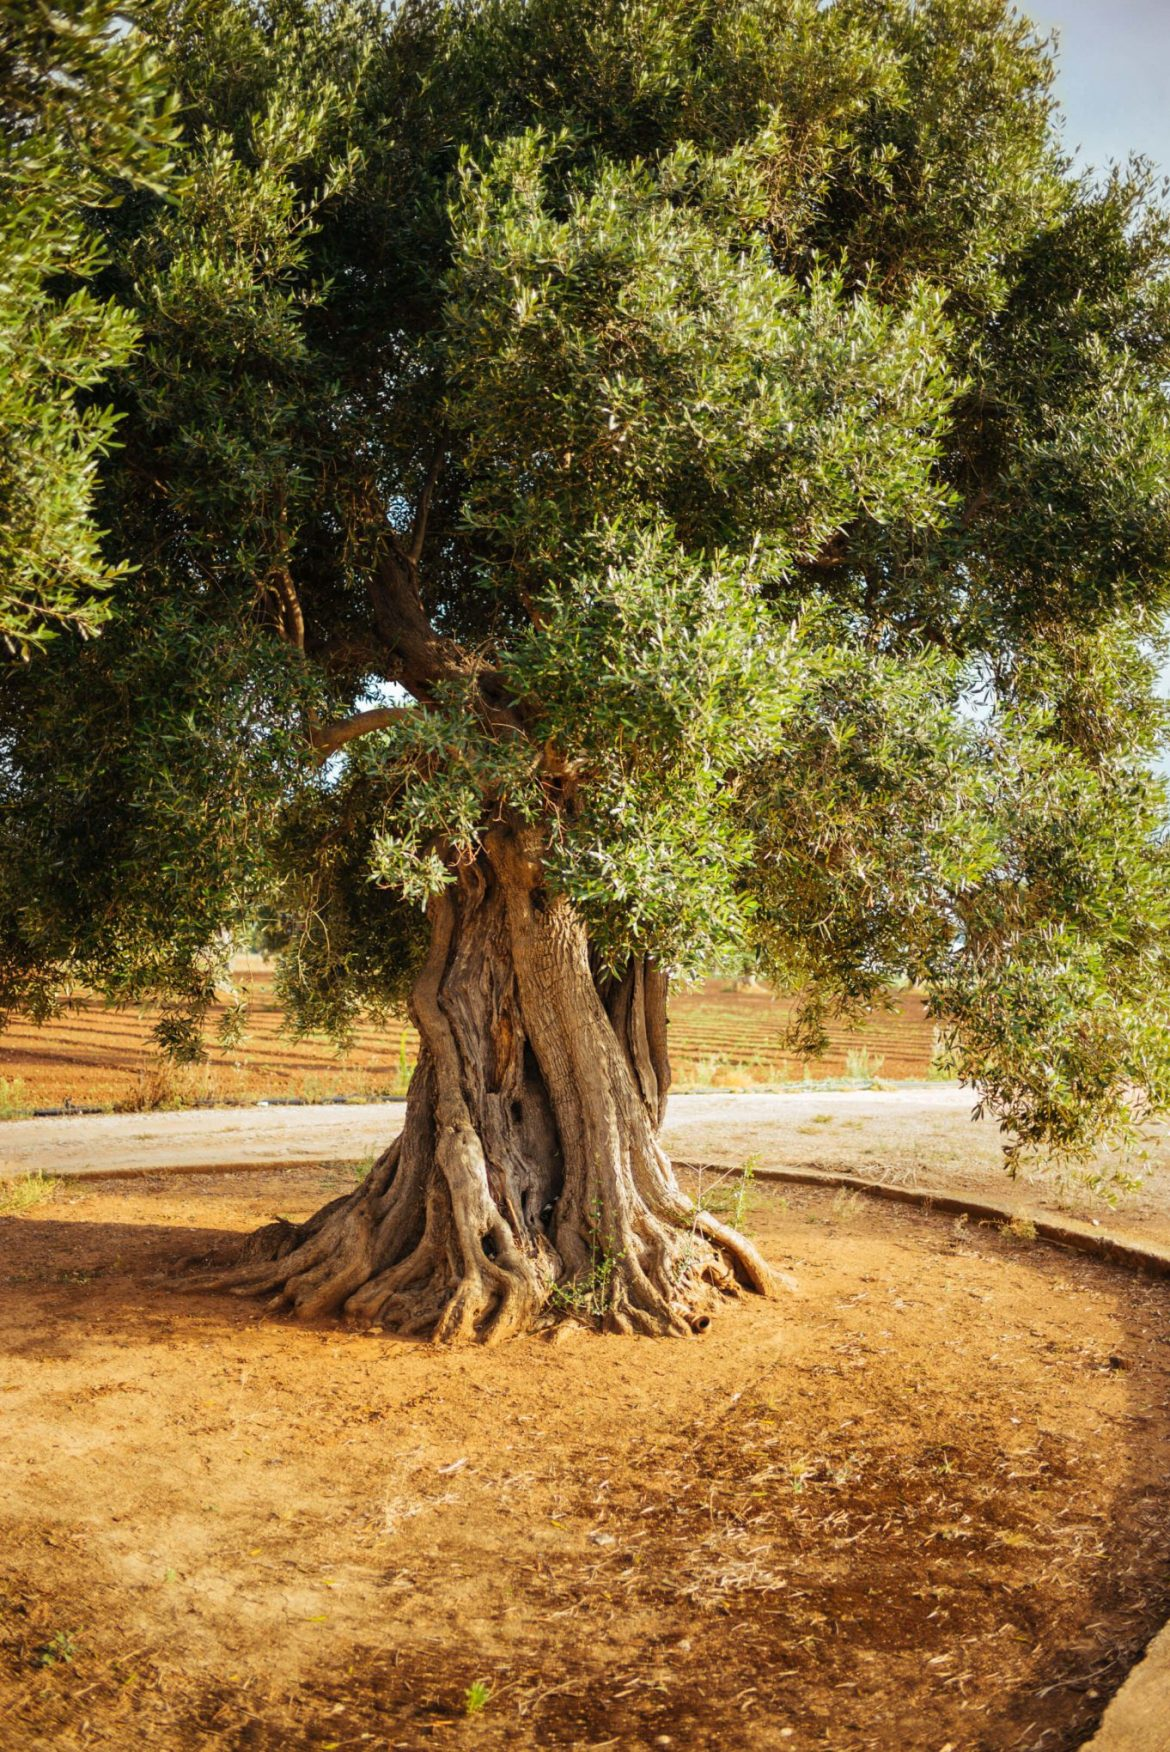 Explore Ancient Olive trees in Puglia, this is one of the most undiscovered romantic destinations in italy for your romantic getaway - try olive oil or take a cheese tour